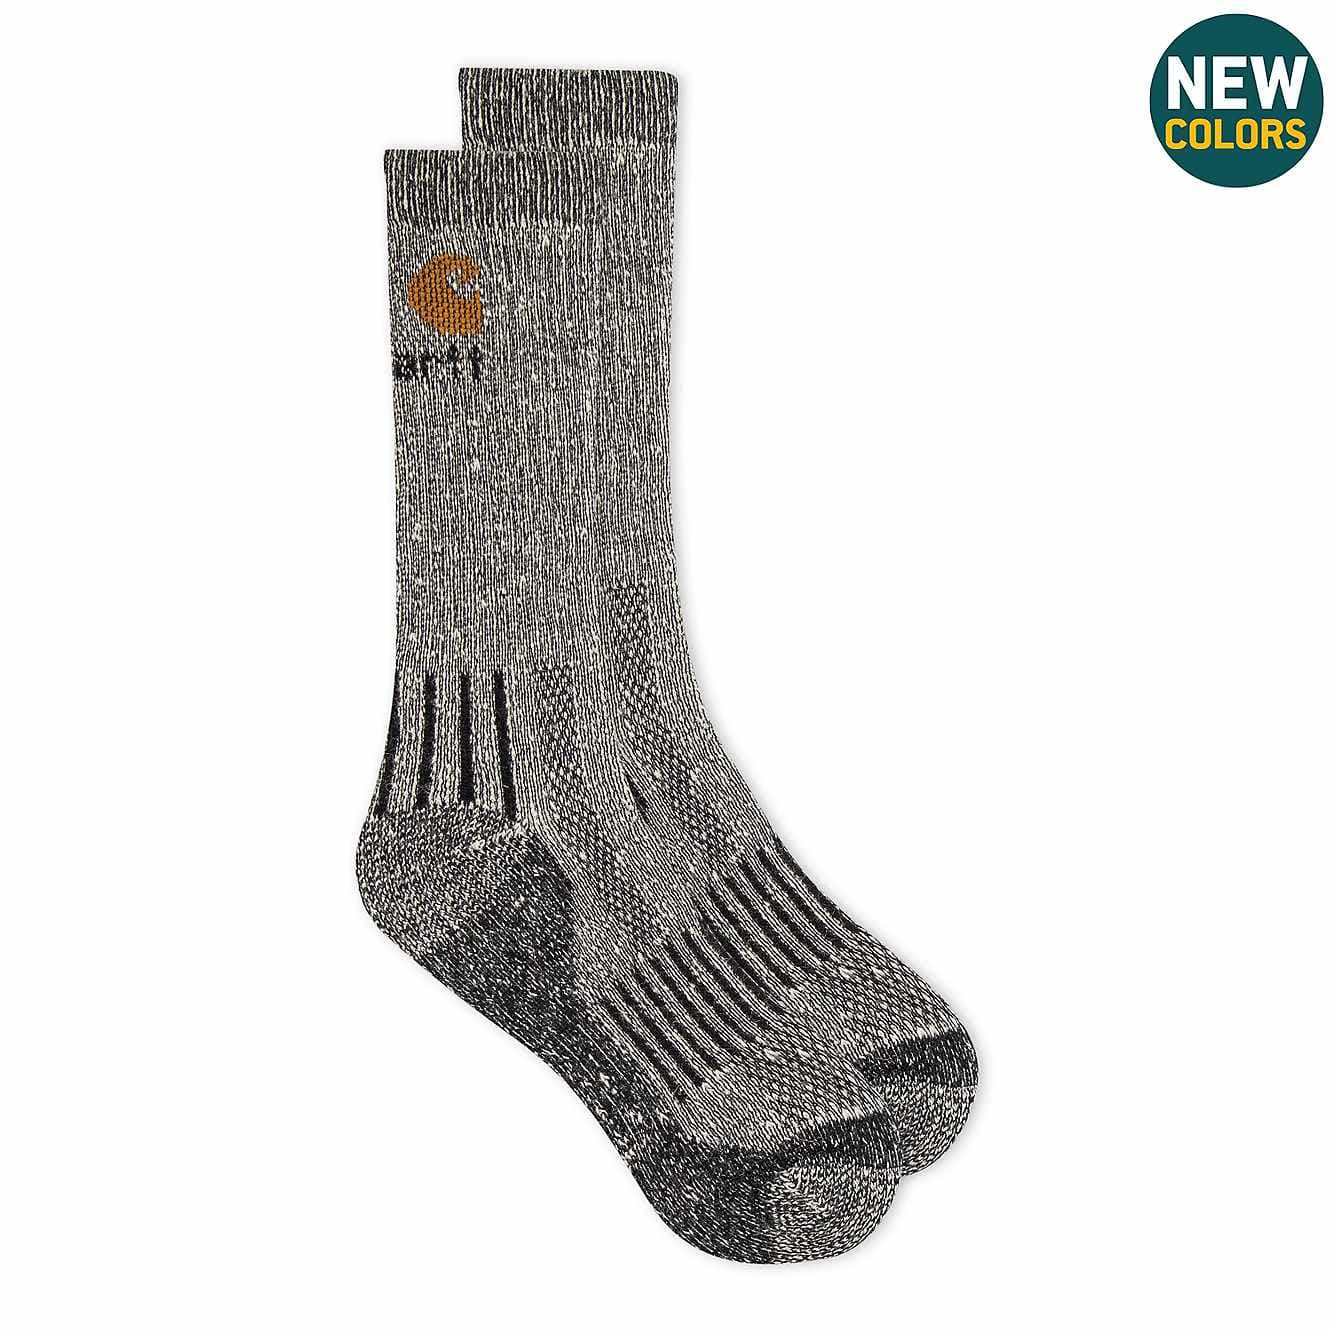 Picture of All-Terrain Crew Sock 2 Pack in Black